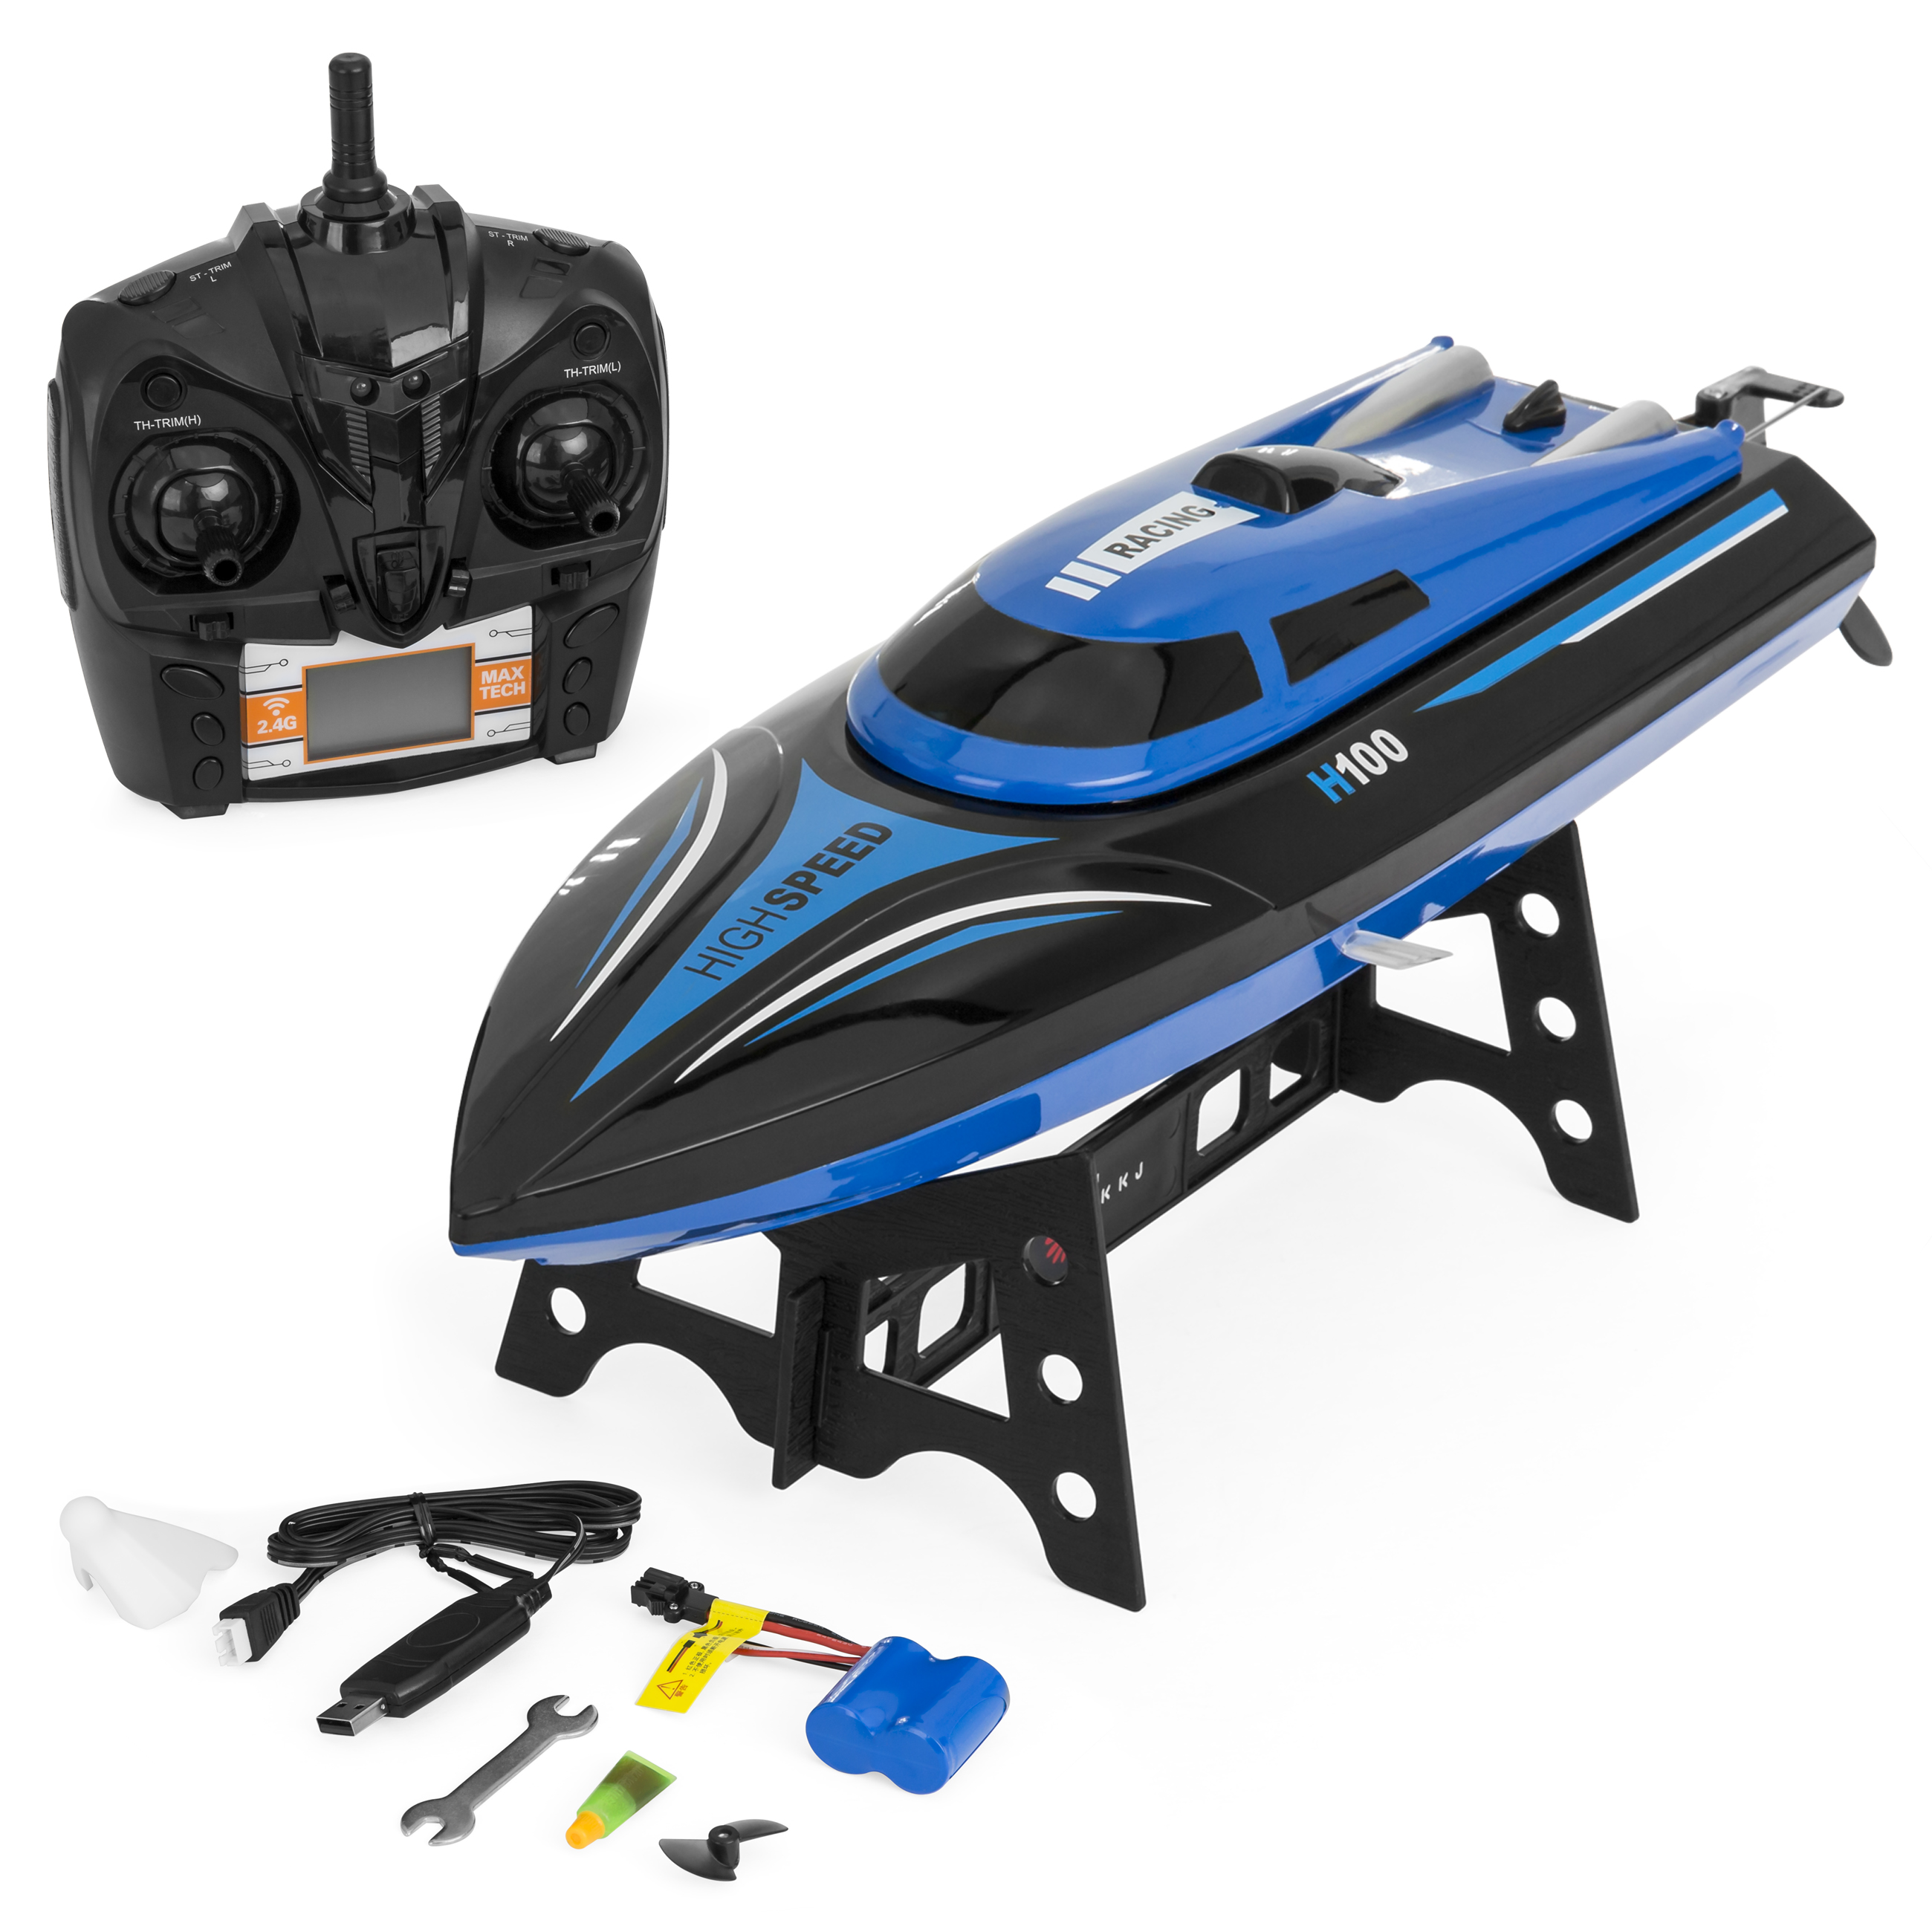 Best Choice Products H100 4-Channel 2.4GHz Remote Control High Speed Racing RC Boat w  Rechargeable Batteries... by Best Choice Products